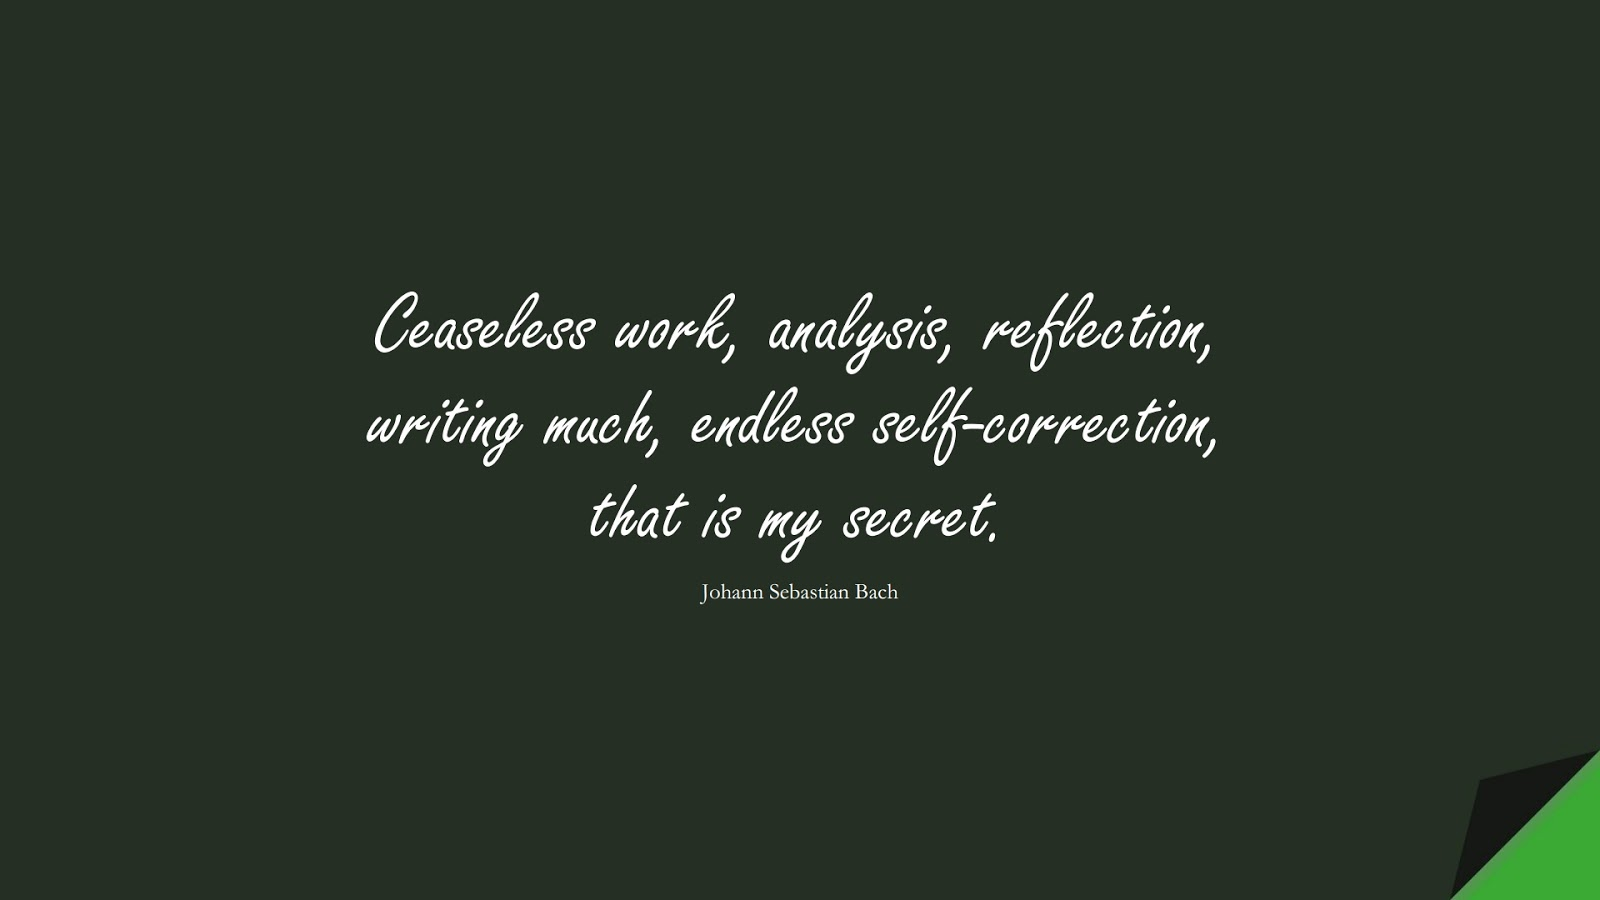 Ceaseless work, analysis, reflection, writing much, endless self-correction, that is my secret. (Johann Sebastian Bach);  #FamousQuotes